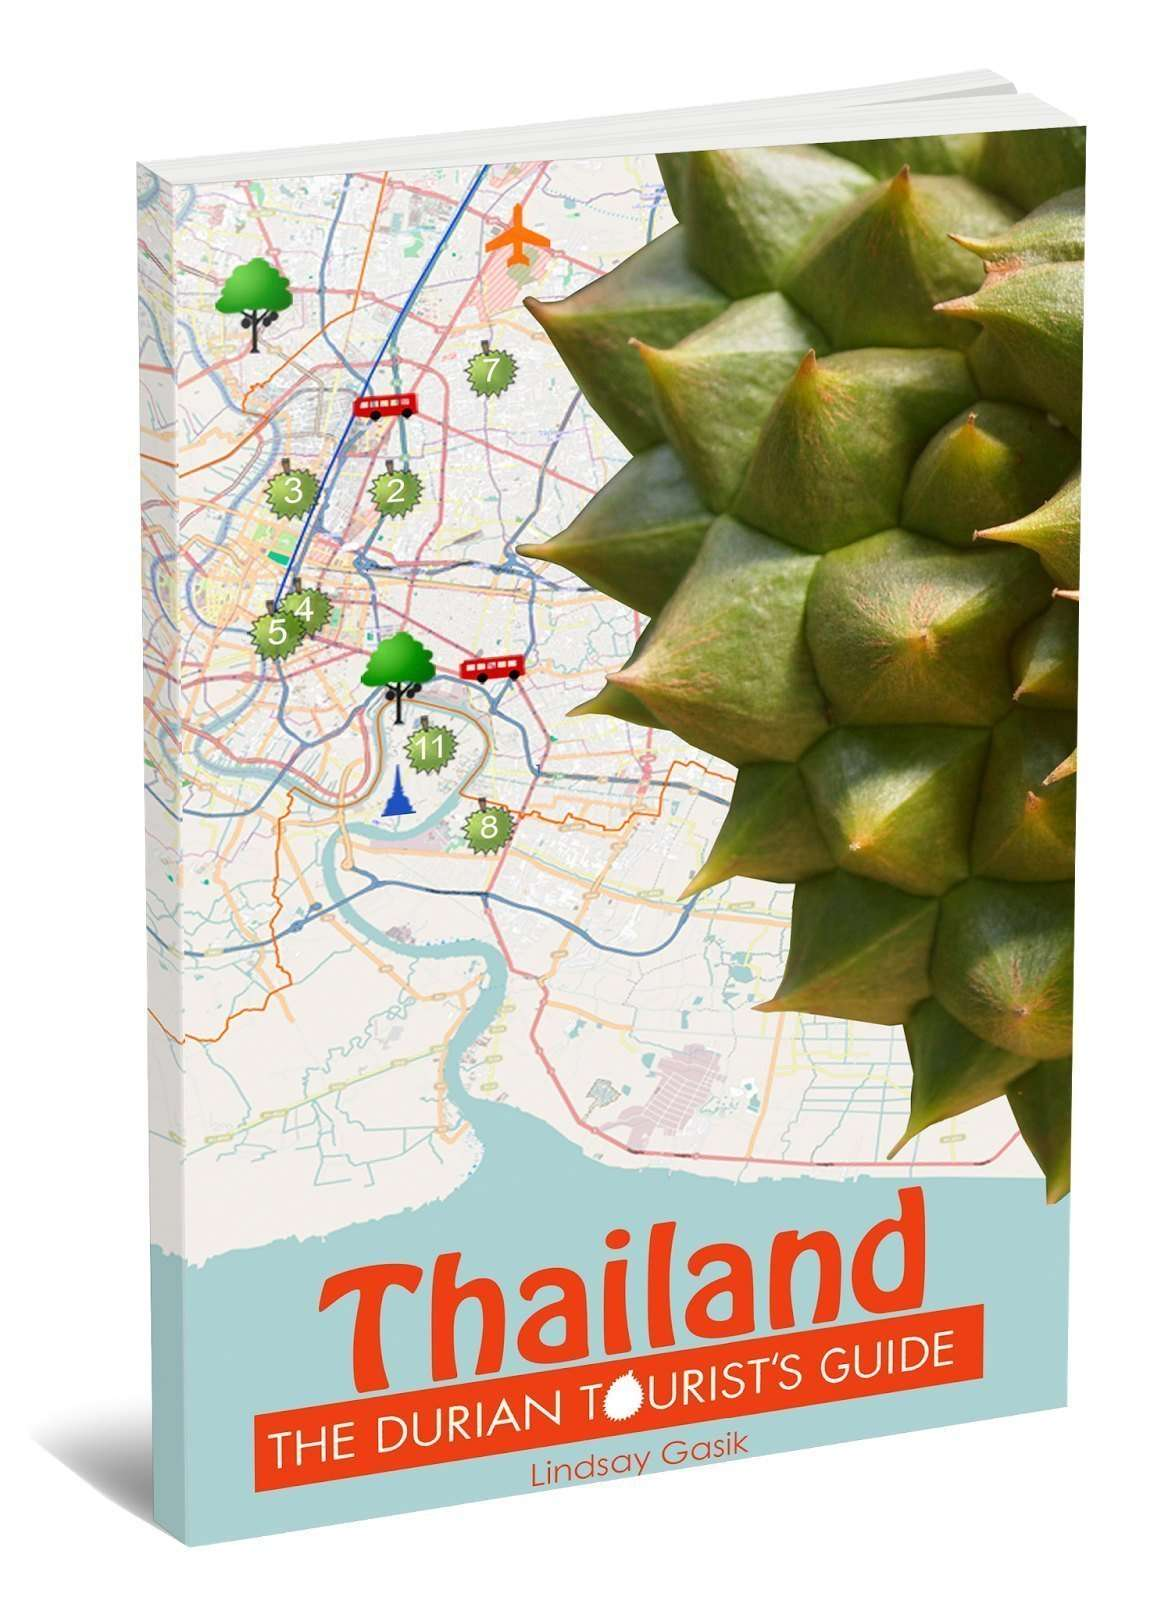 Thailand-Durian-Tourist-guide